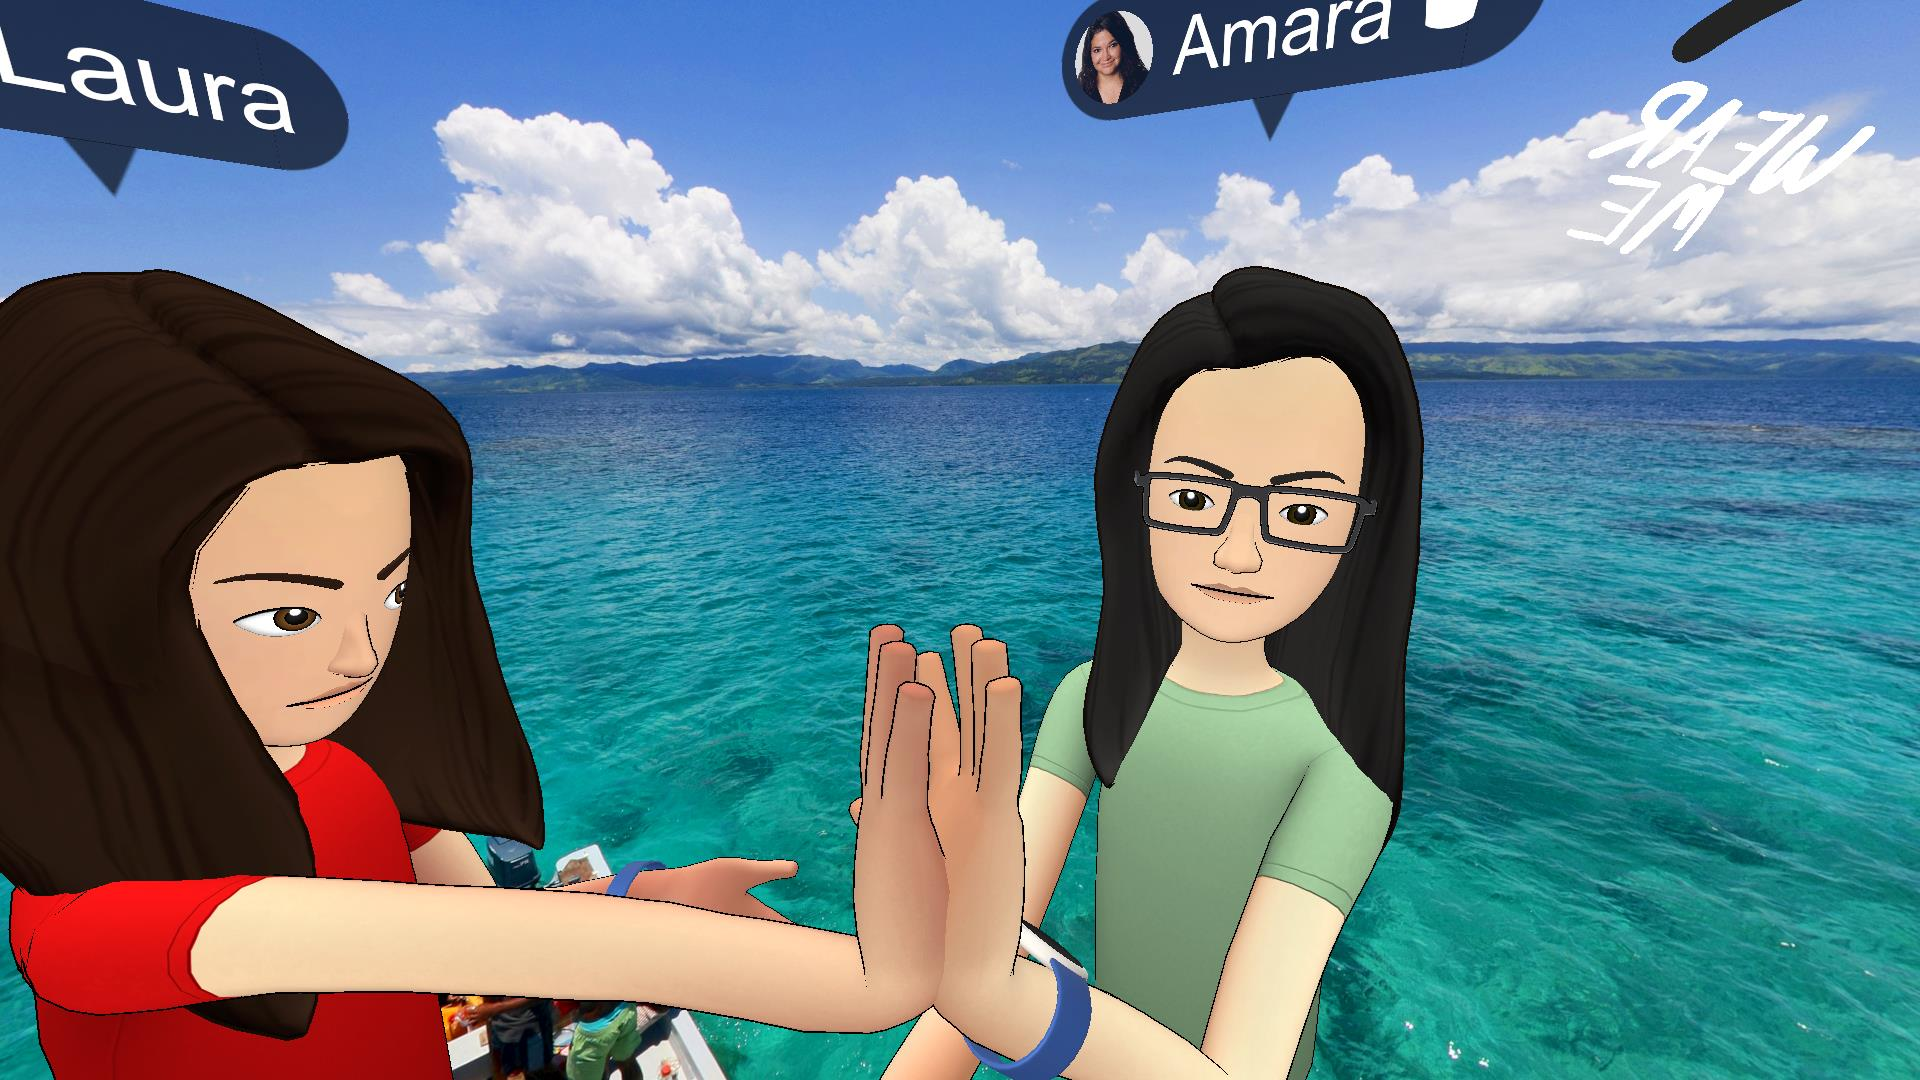 USC Annenberg professors Laura Davis, left, and Amara Aguilar go live for the first time in Facebook Spaces, a social virtual reality app.